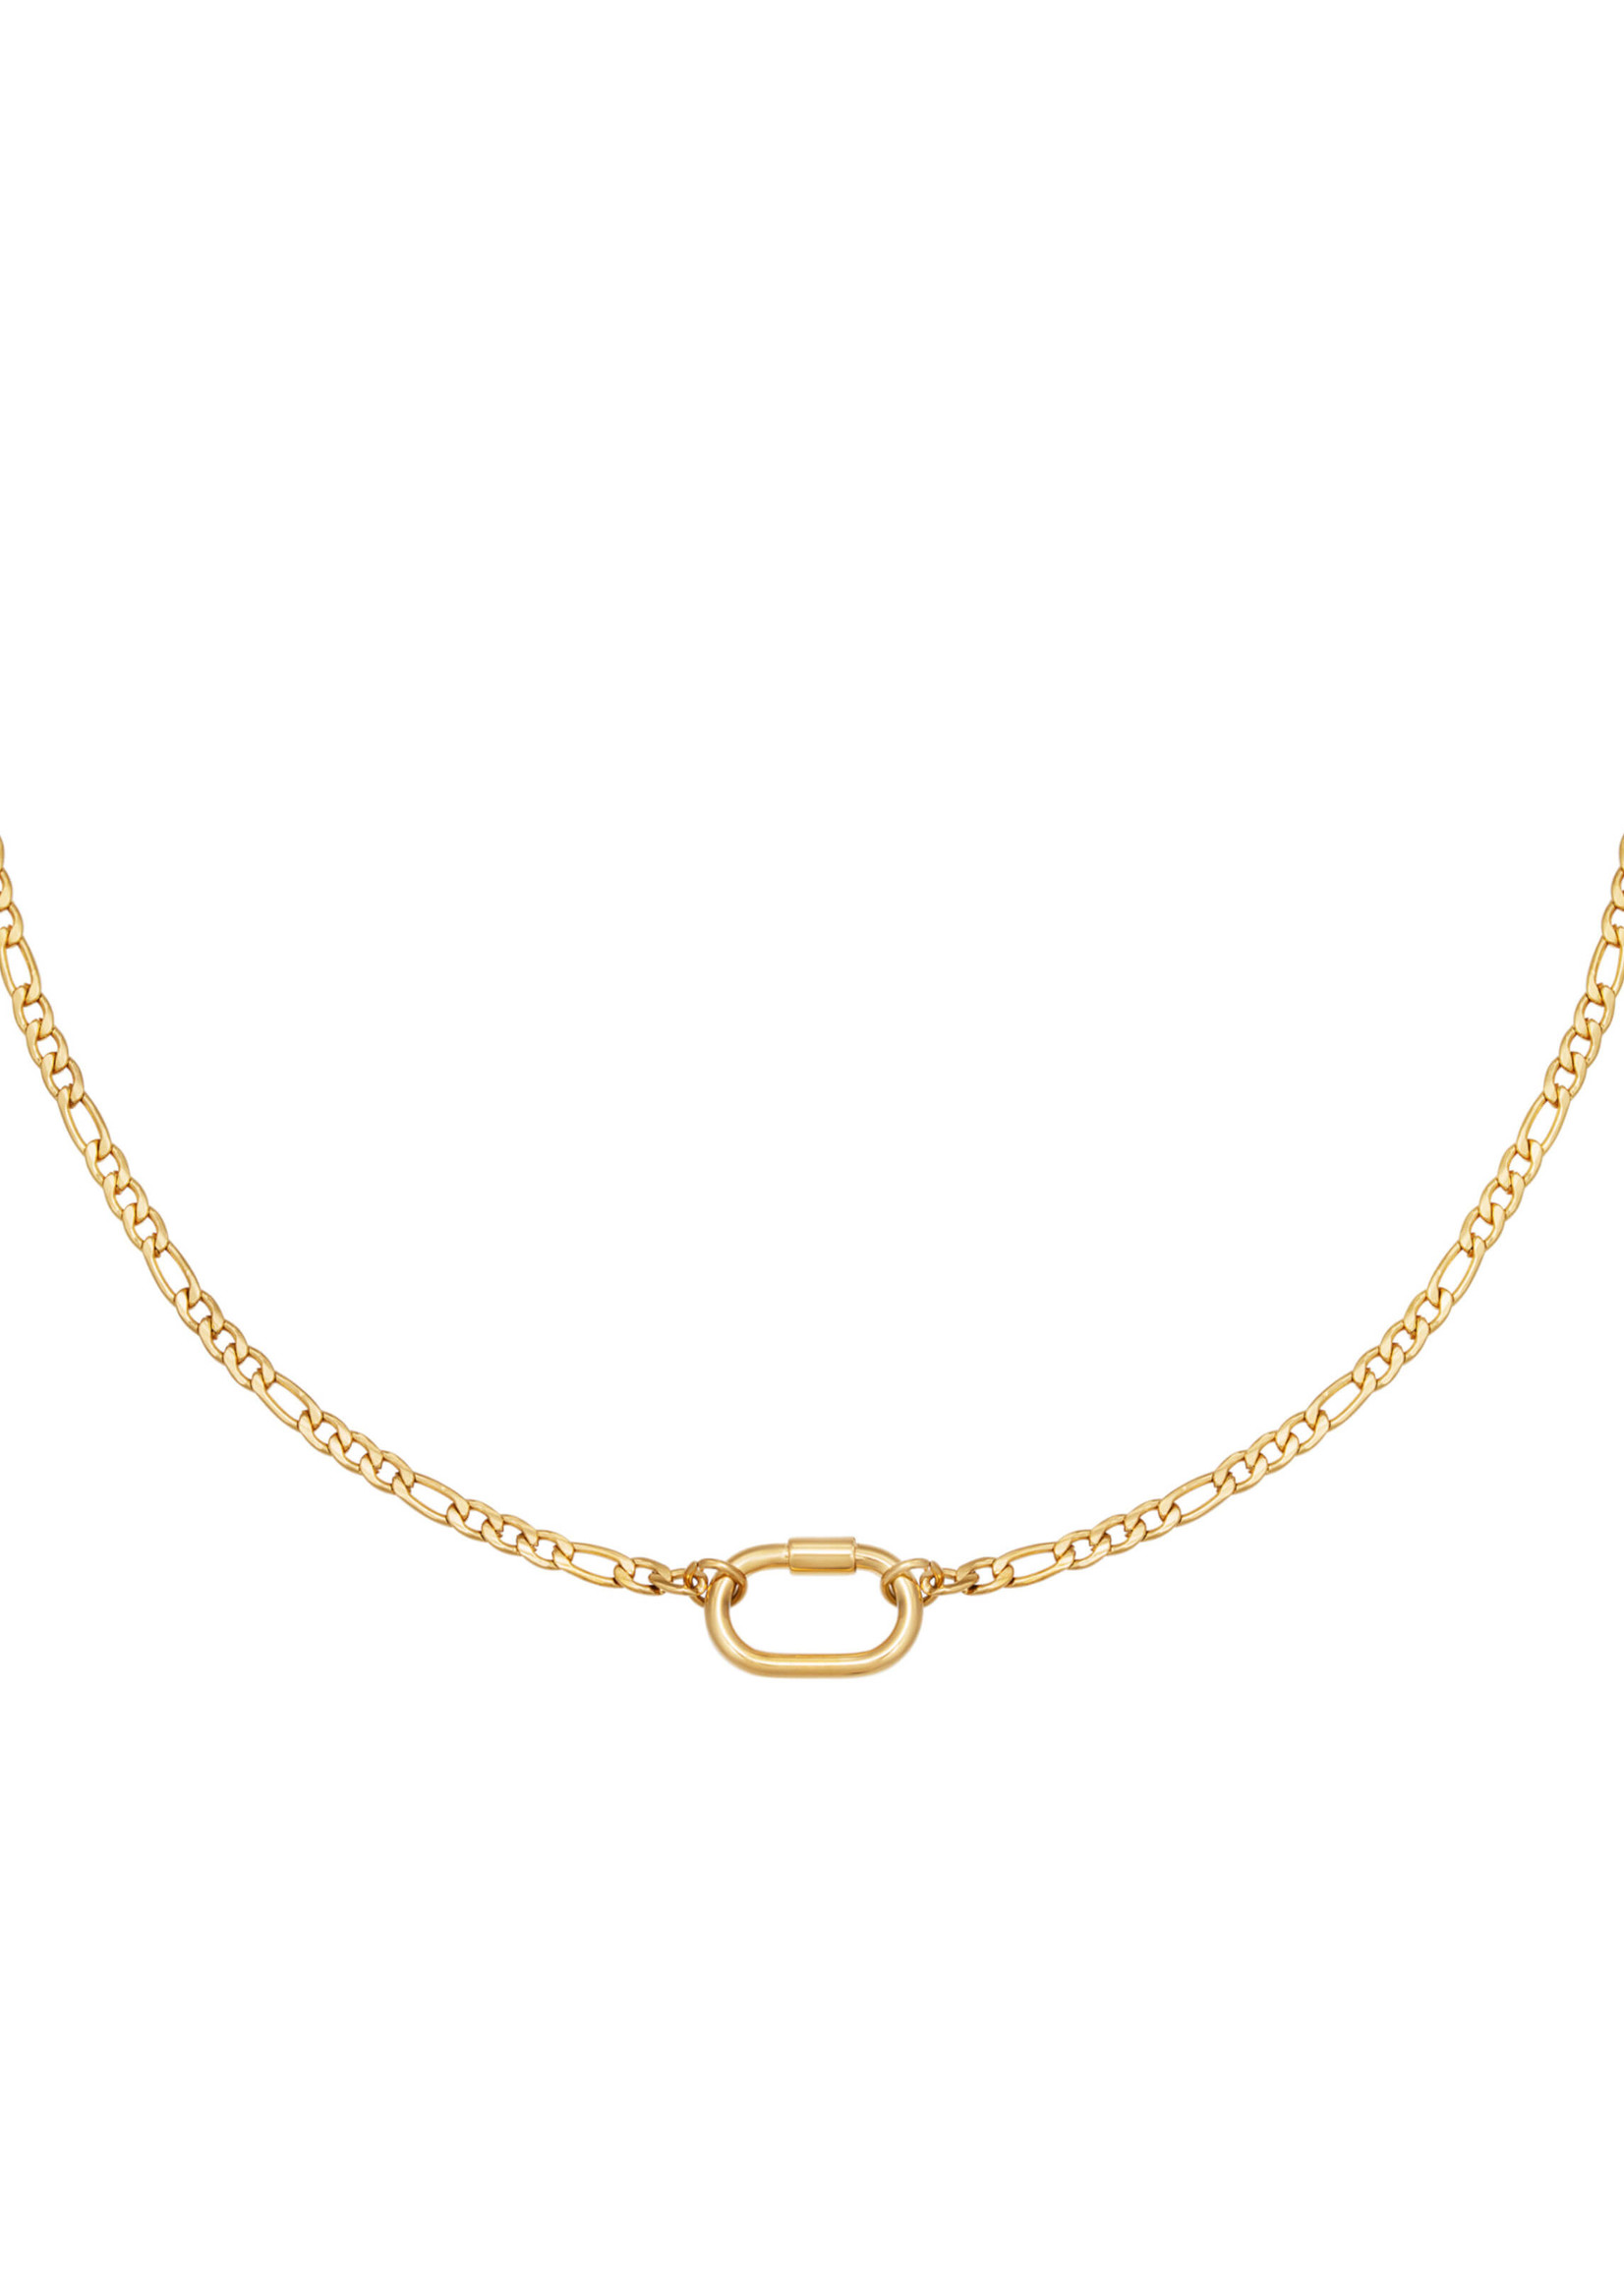 SHELBY KETTING GOUD